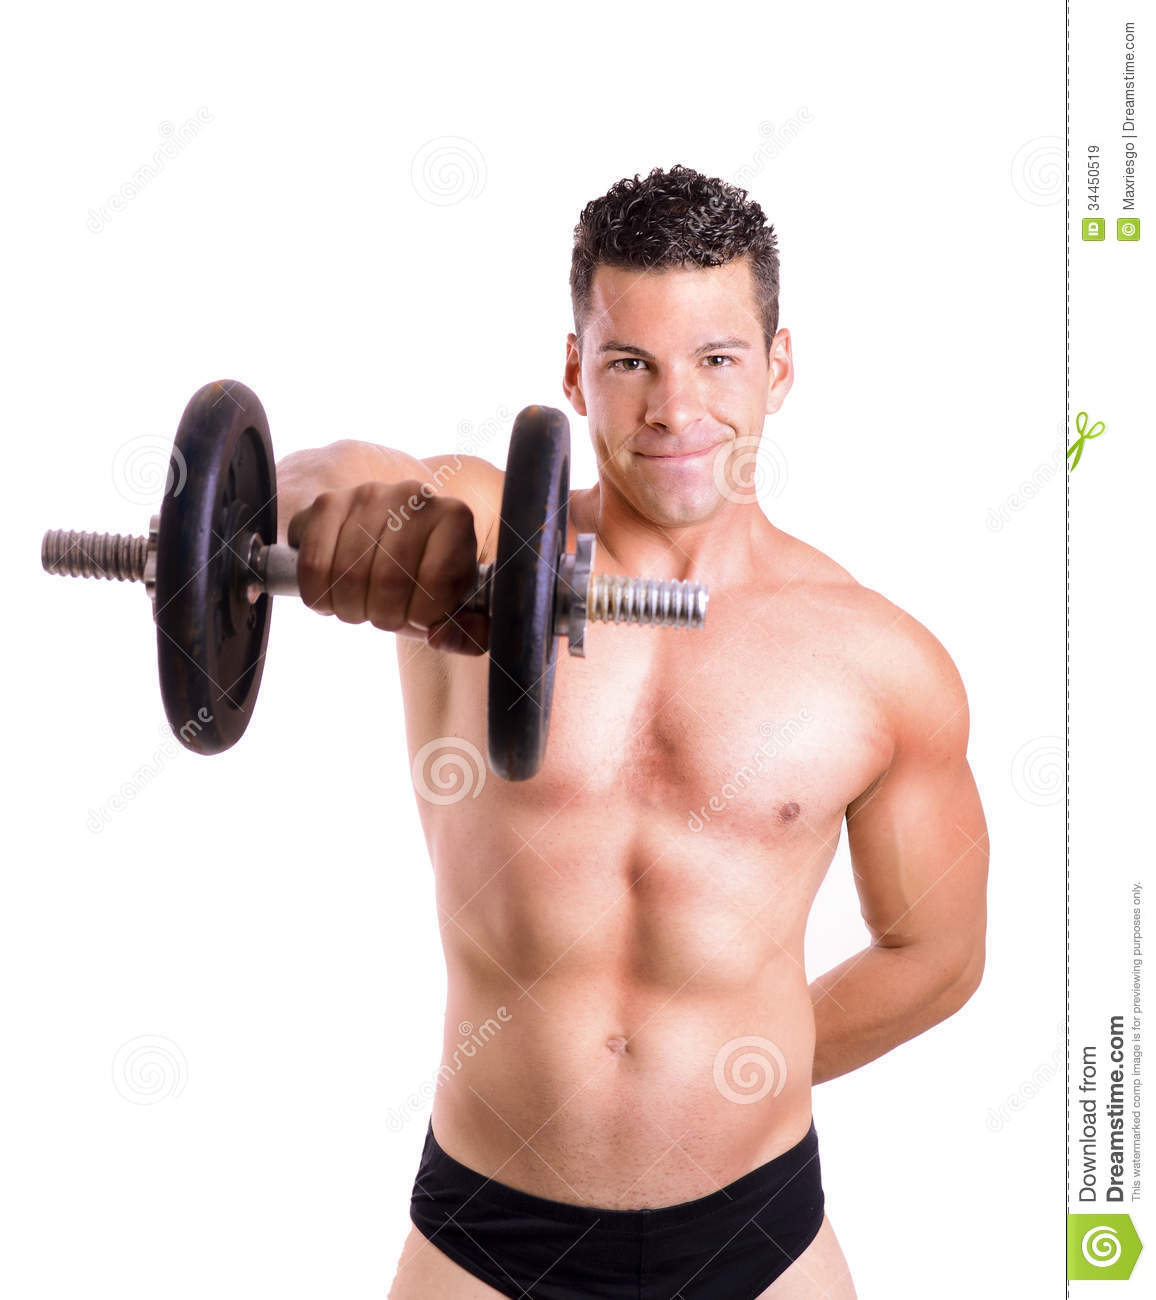 Shoulder Exercise Royalty Free Stock Images - Image: 34450519